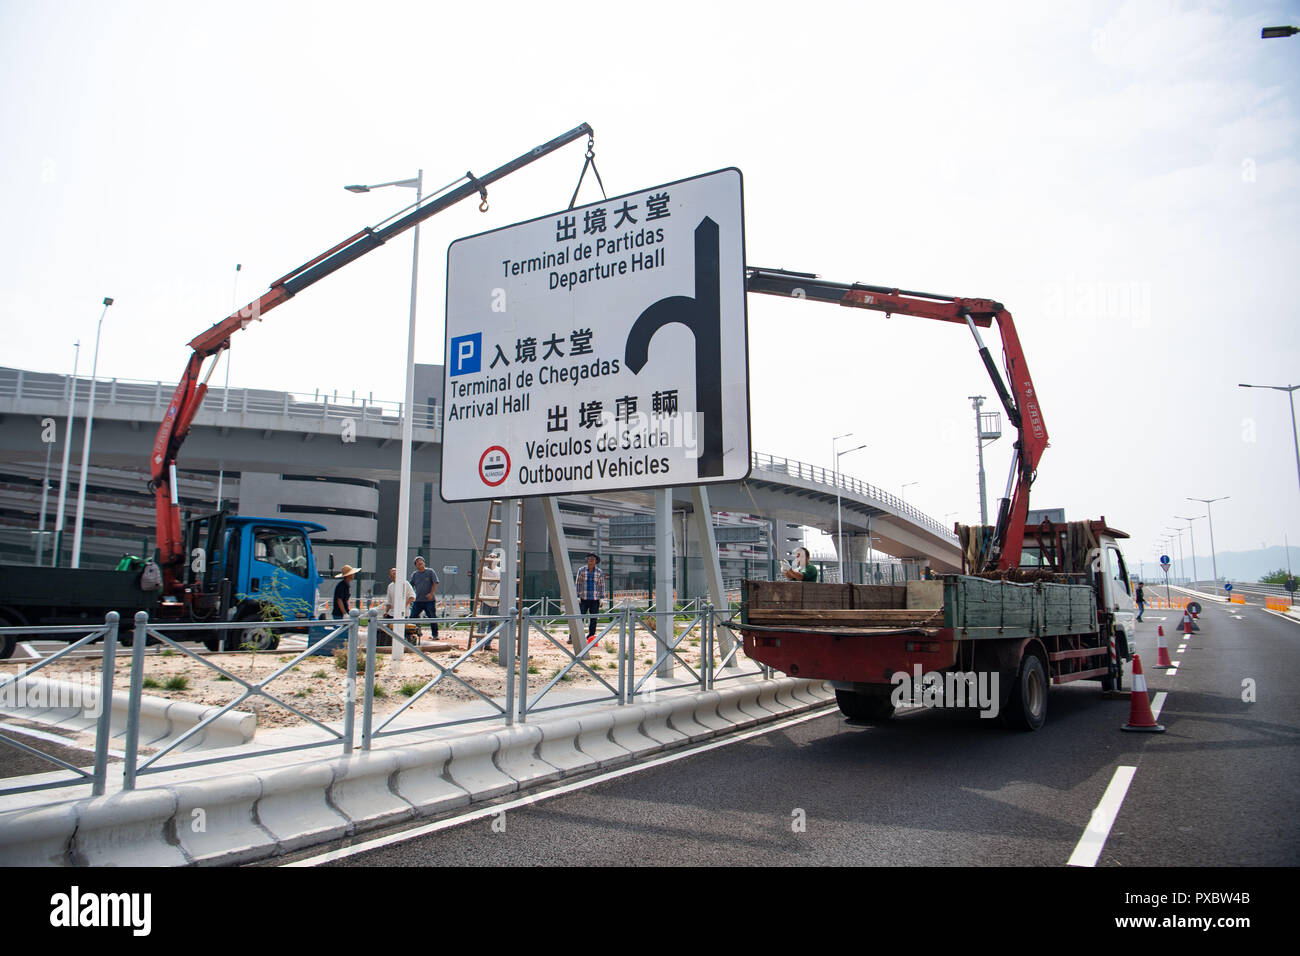 Macao, China. 19th Oct, 2018. Workers install facilities on the artificial island for the Hong Kong-Zhuhai-Macao Bridge in Macao, south China, Oct. 19, 2018. The bridge will start operation on Oct. 24, further integrating cities in the Pearl River Delta. Credit: Cheong Kam Ka/Xinhua/Alamy Live News - Stock Image